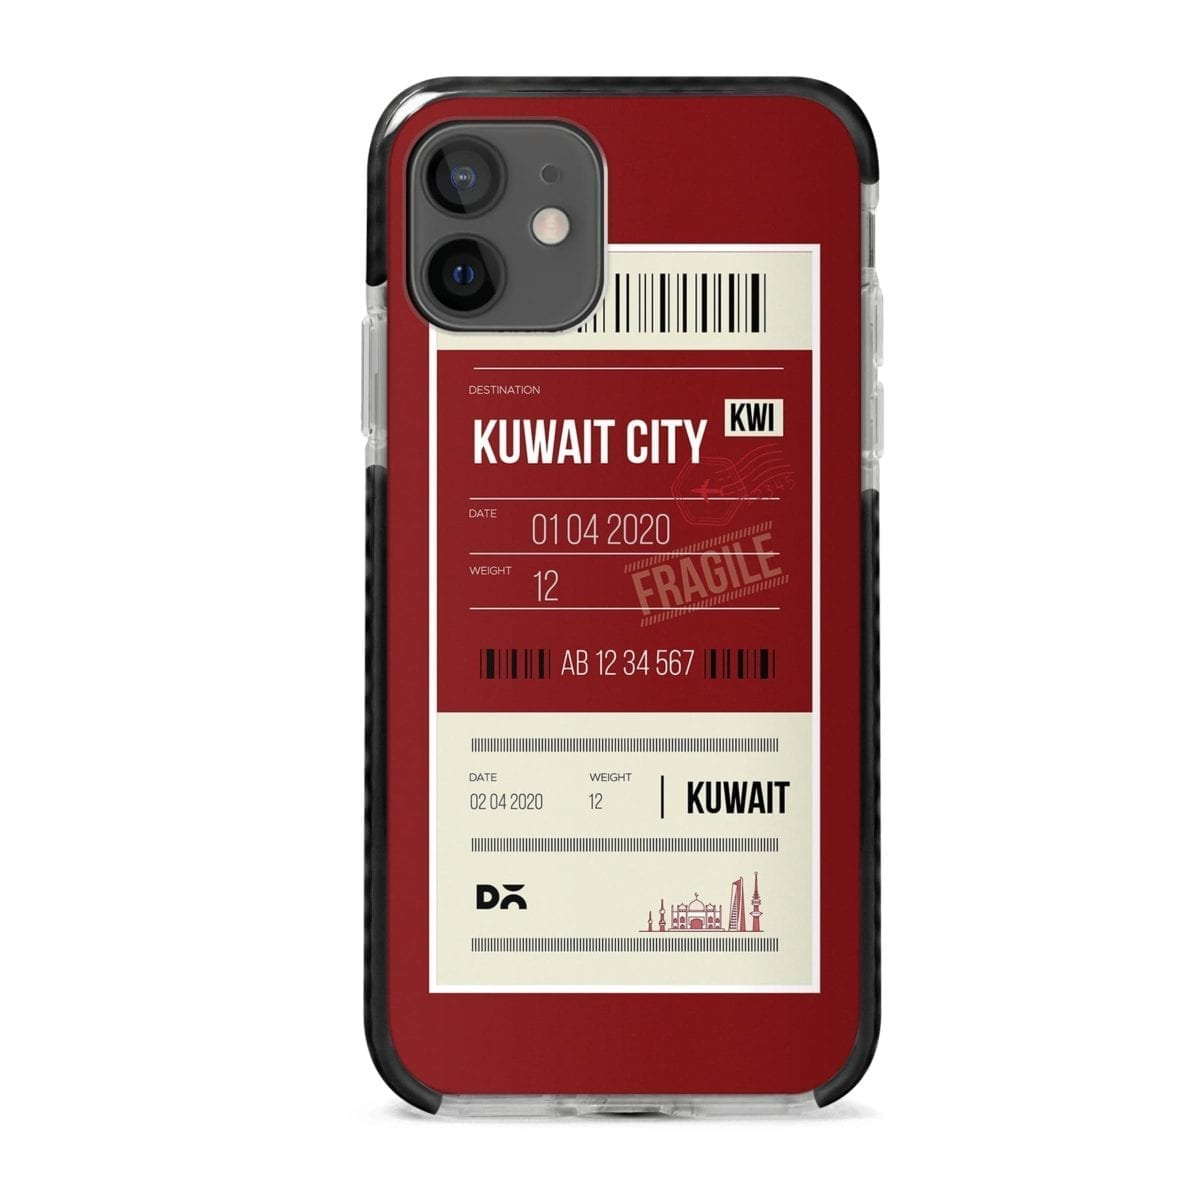 Kuwait City Stride Case Cover for Apple iPhone 12 Mini and Apple iPhone 12 with great design and shock proof | Klippik | Online Shopping | Kuwait UAE Saudi